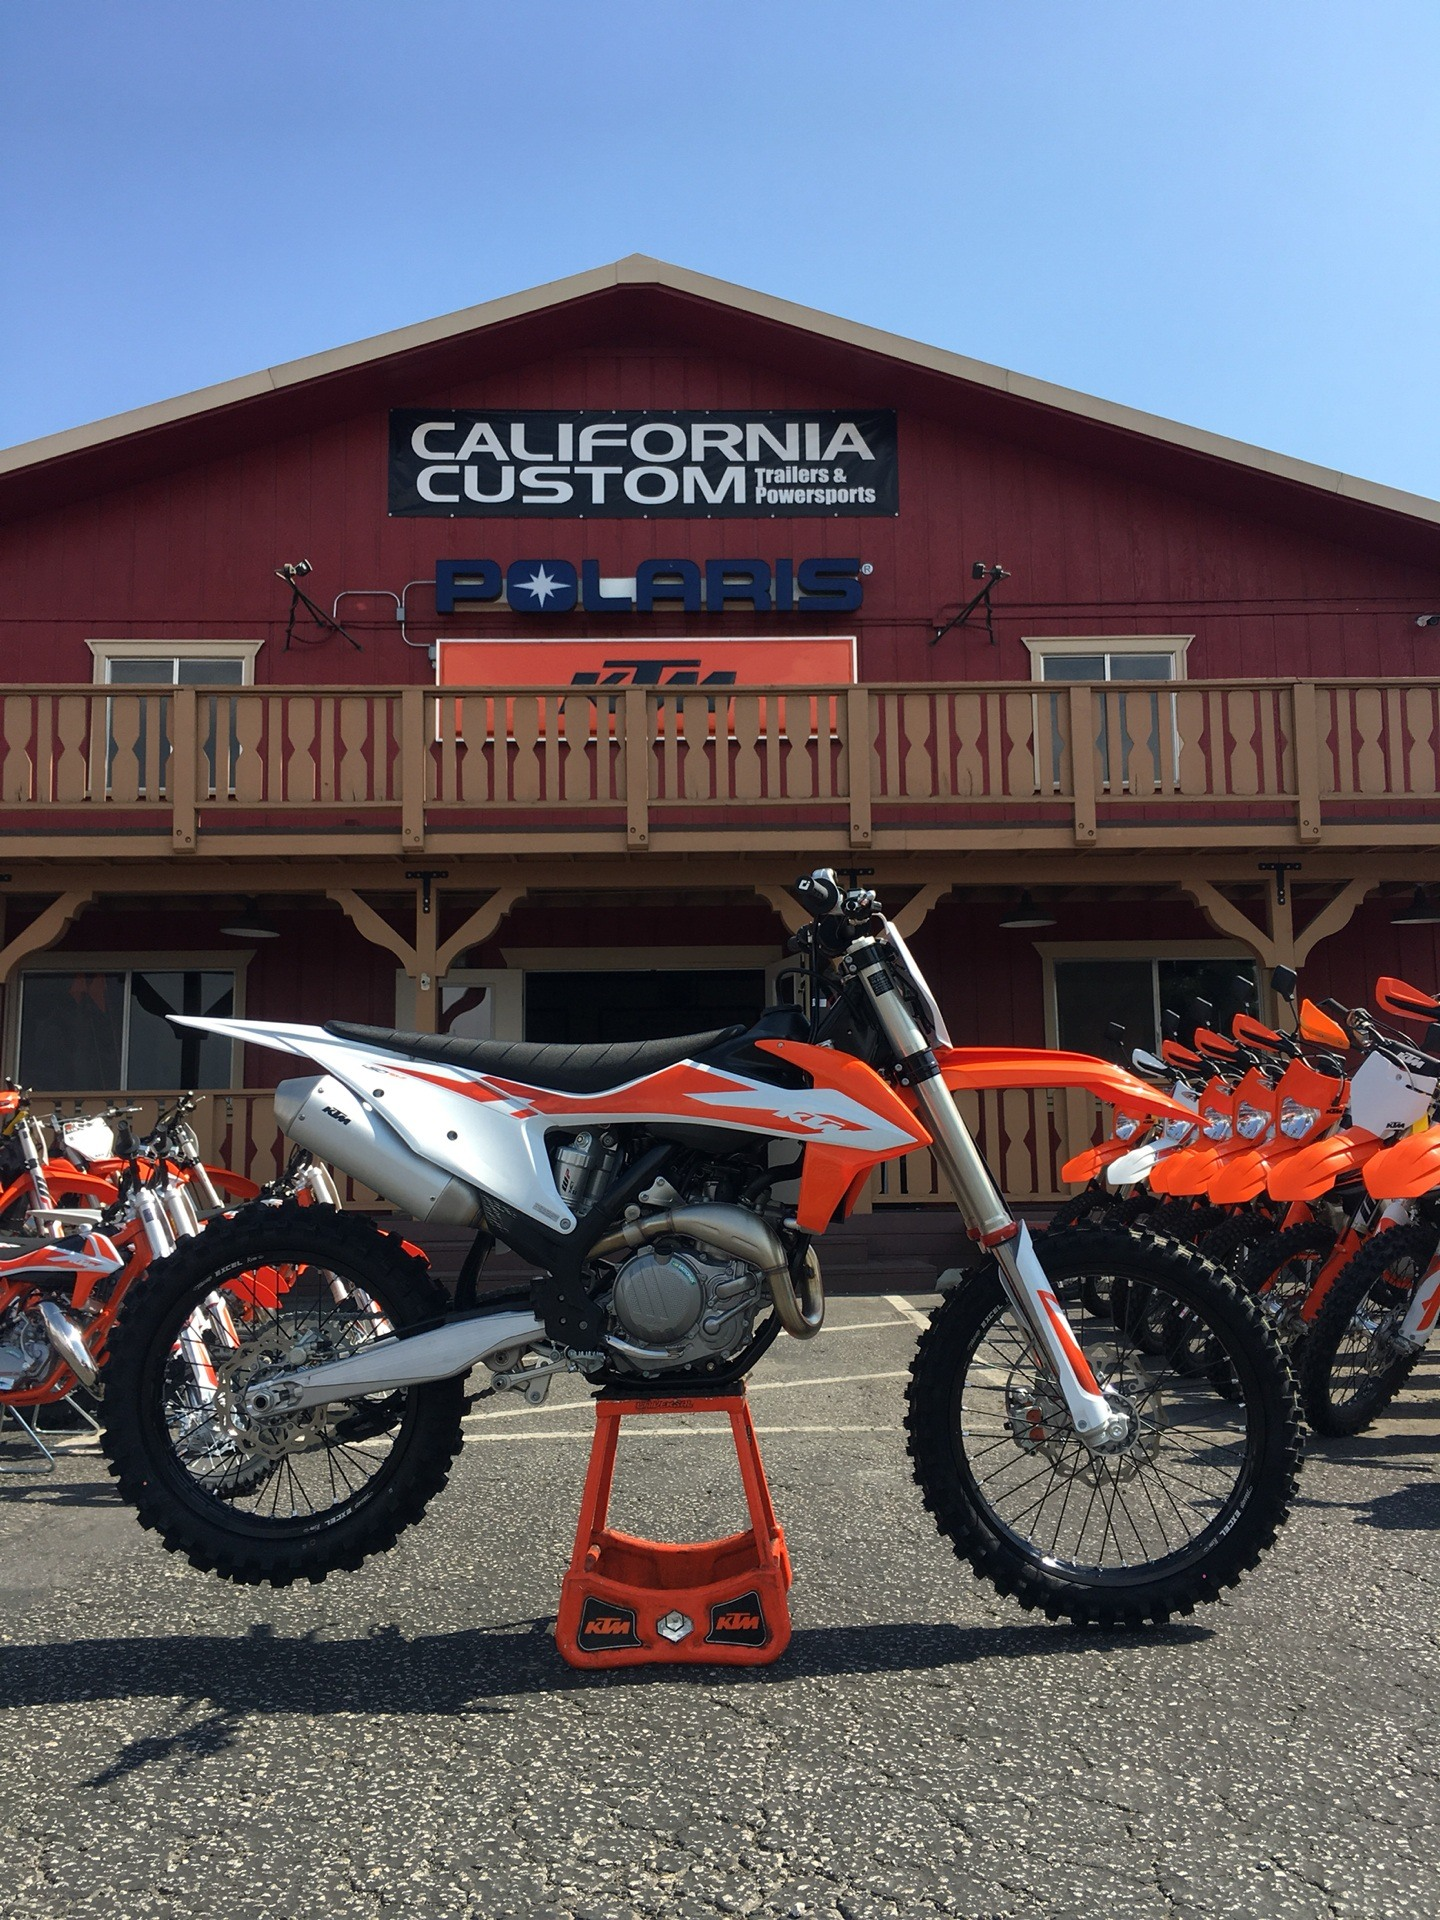 Best 22 Silencer 2020 New 2020 KTM 450 SX F Motorcycles in Paso Robles, CA | Stock